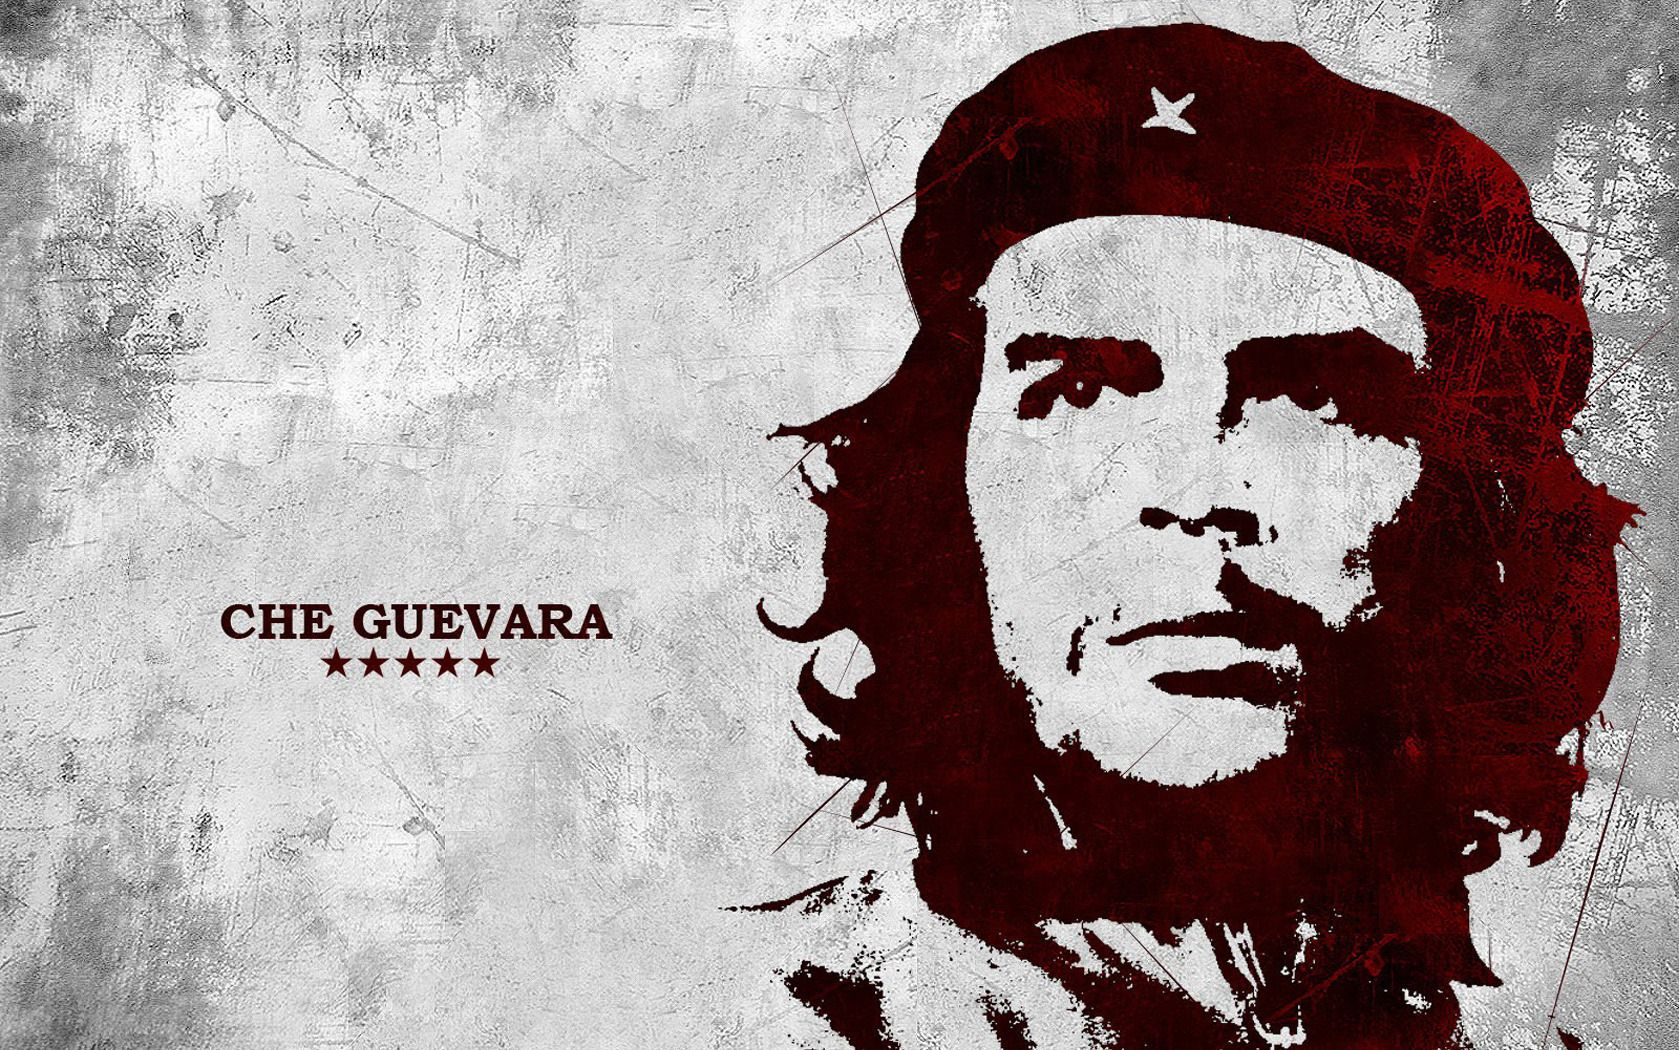 Che Guevara Wallpapersbackgroundspicturesphotoslaptop